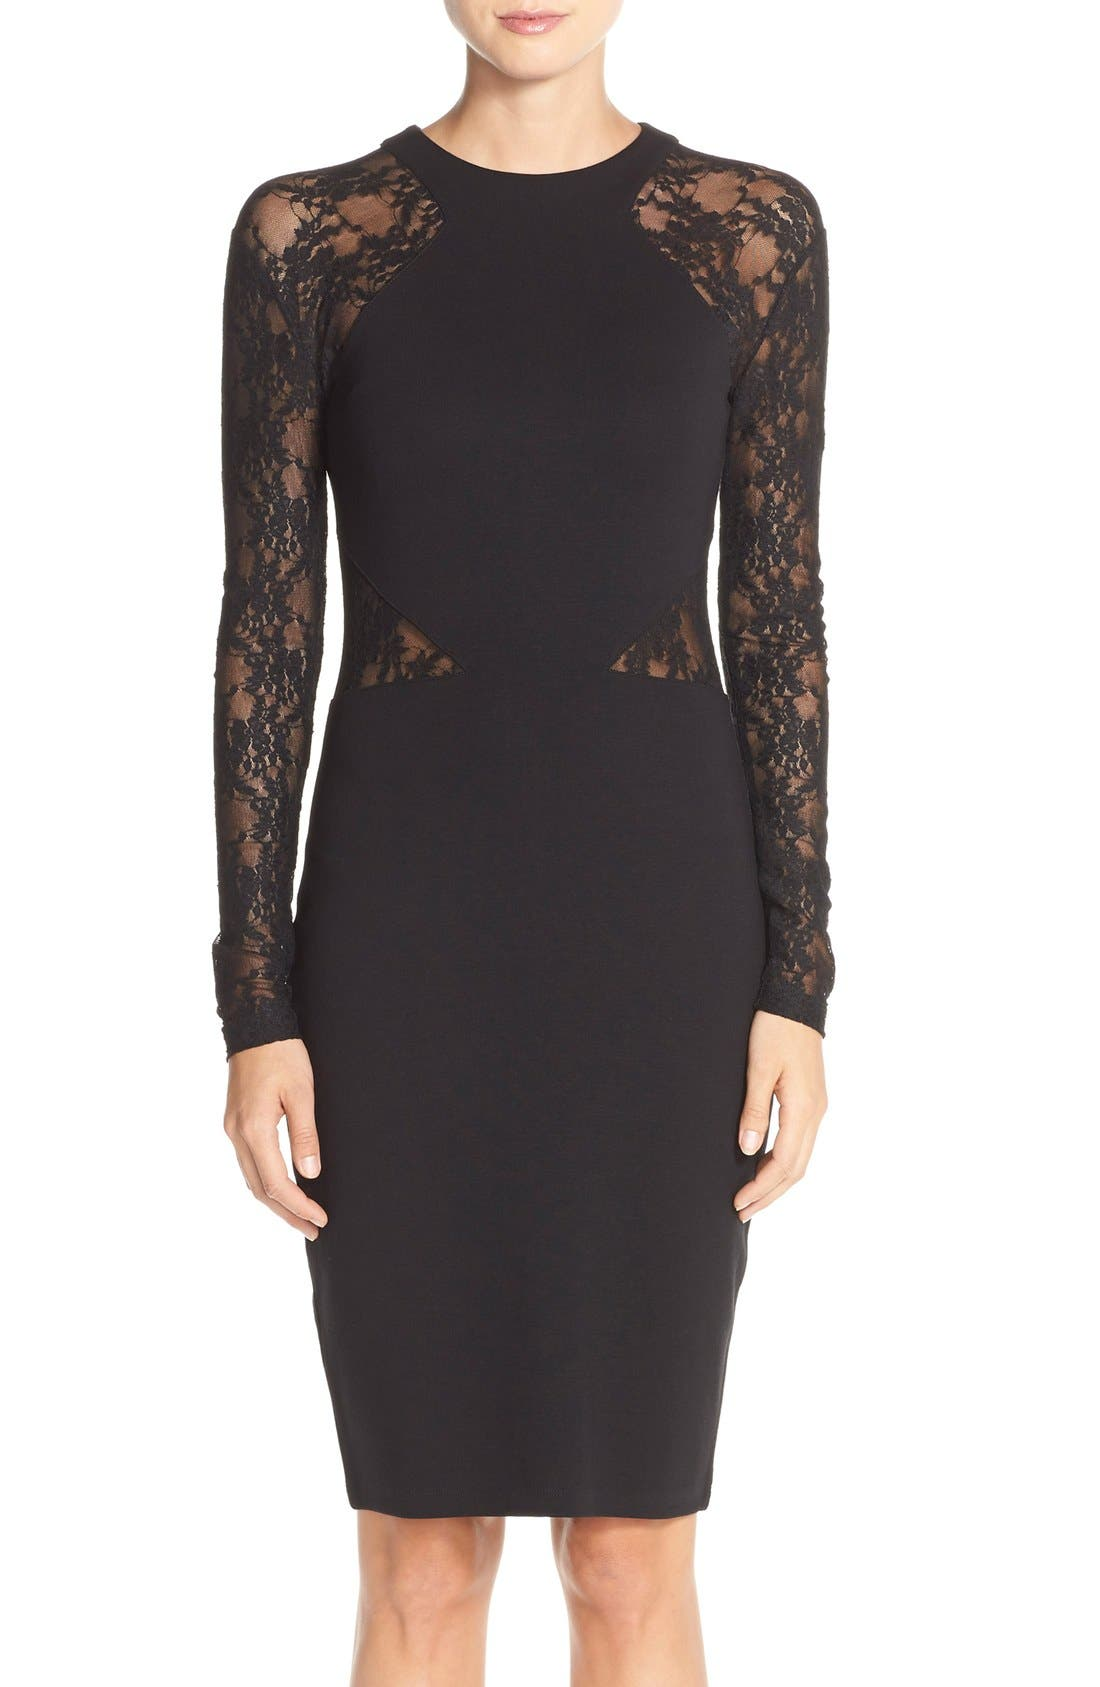 Alternate Image 1 Selected - French Connection 'Viven' Lace & Jersey Sheath Dress